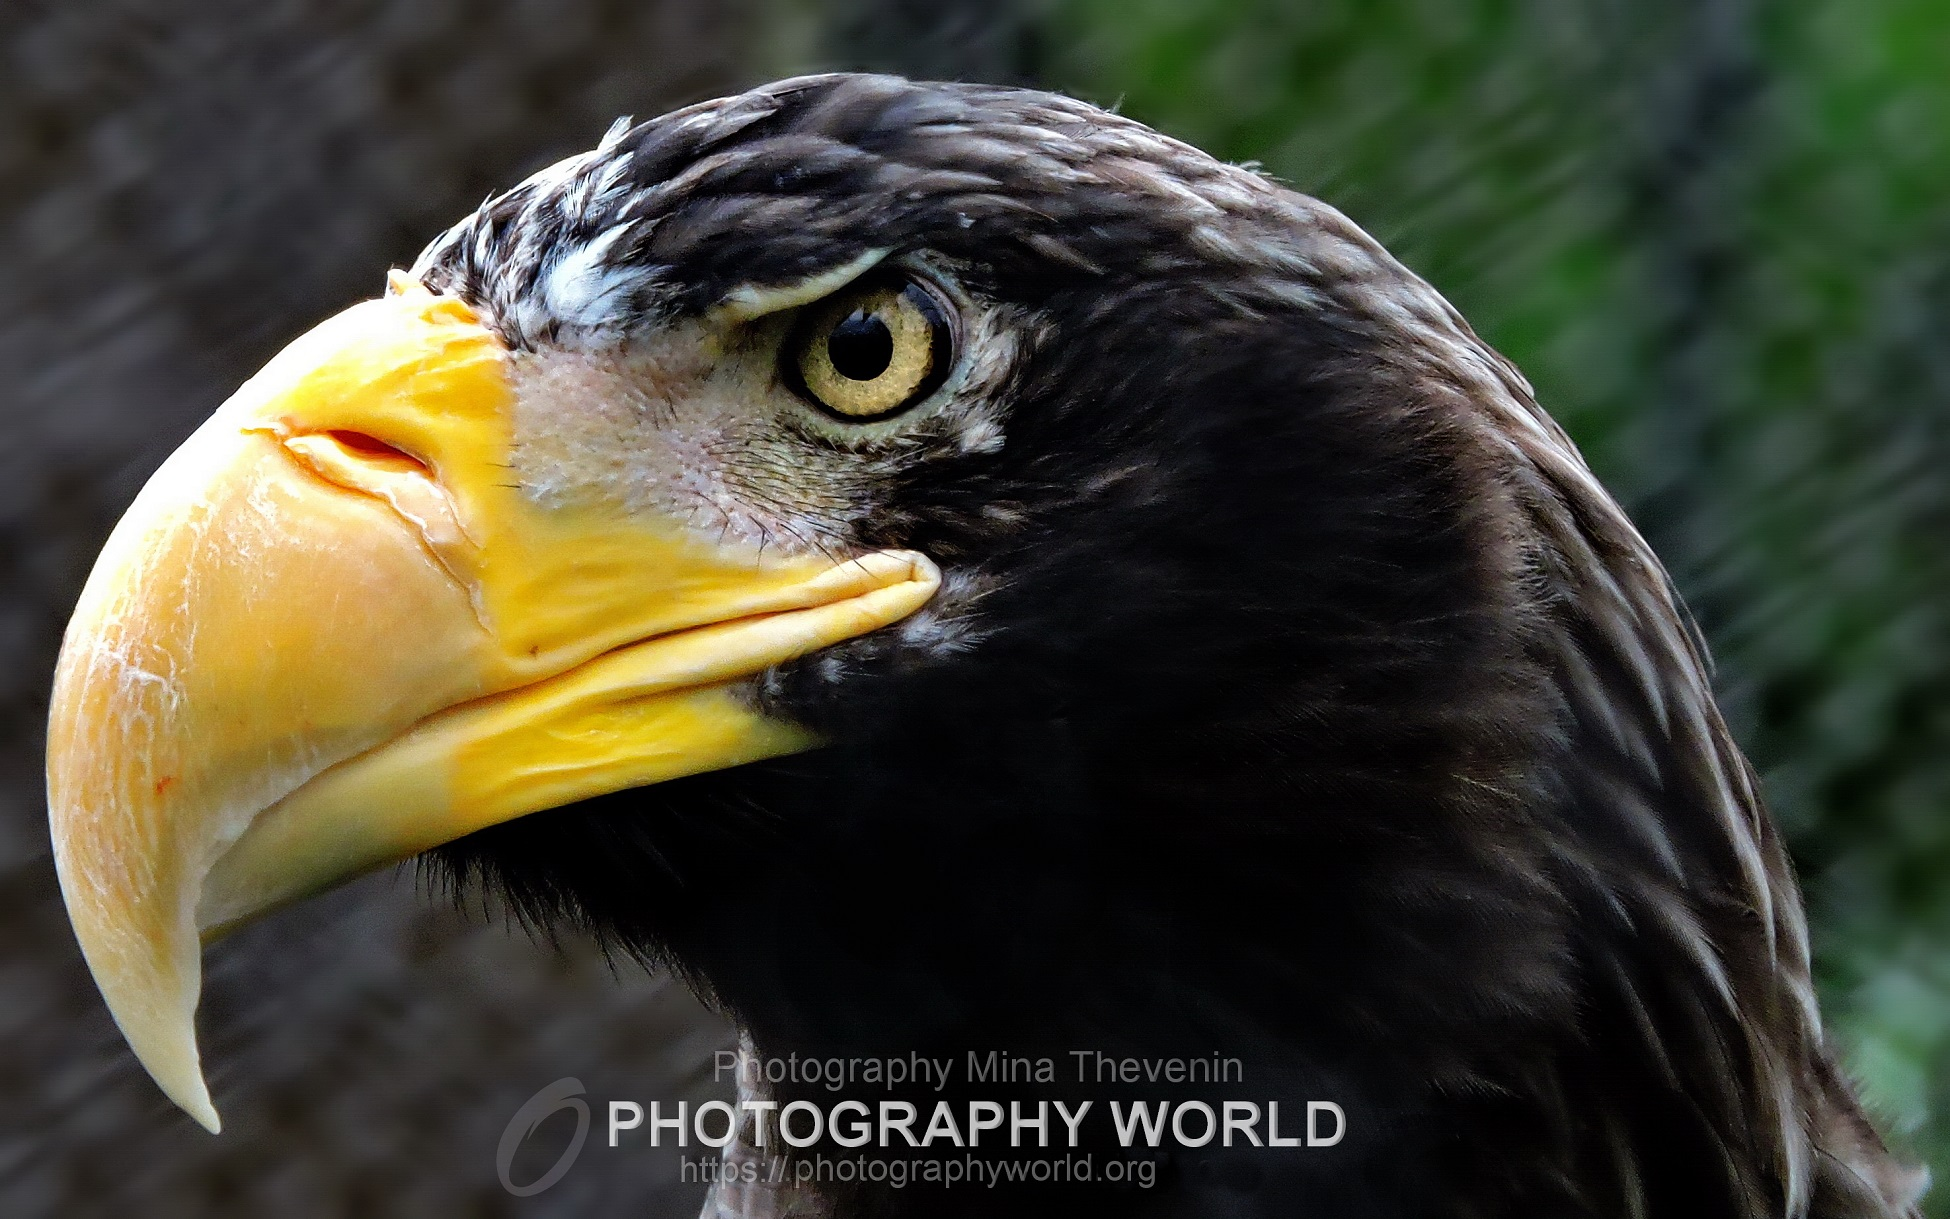 © Steller's Sea Eagle. Photograph by Mina Thevenin for photographyworld.org